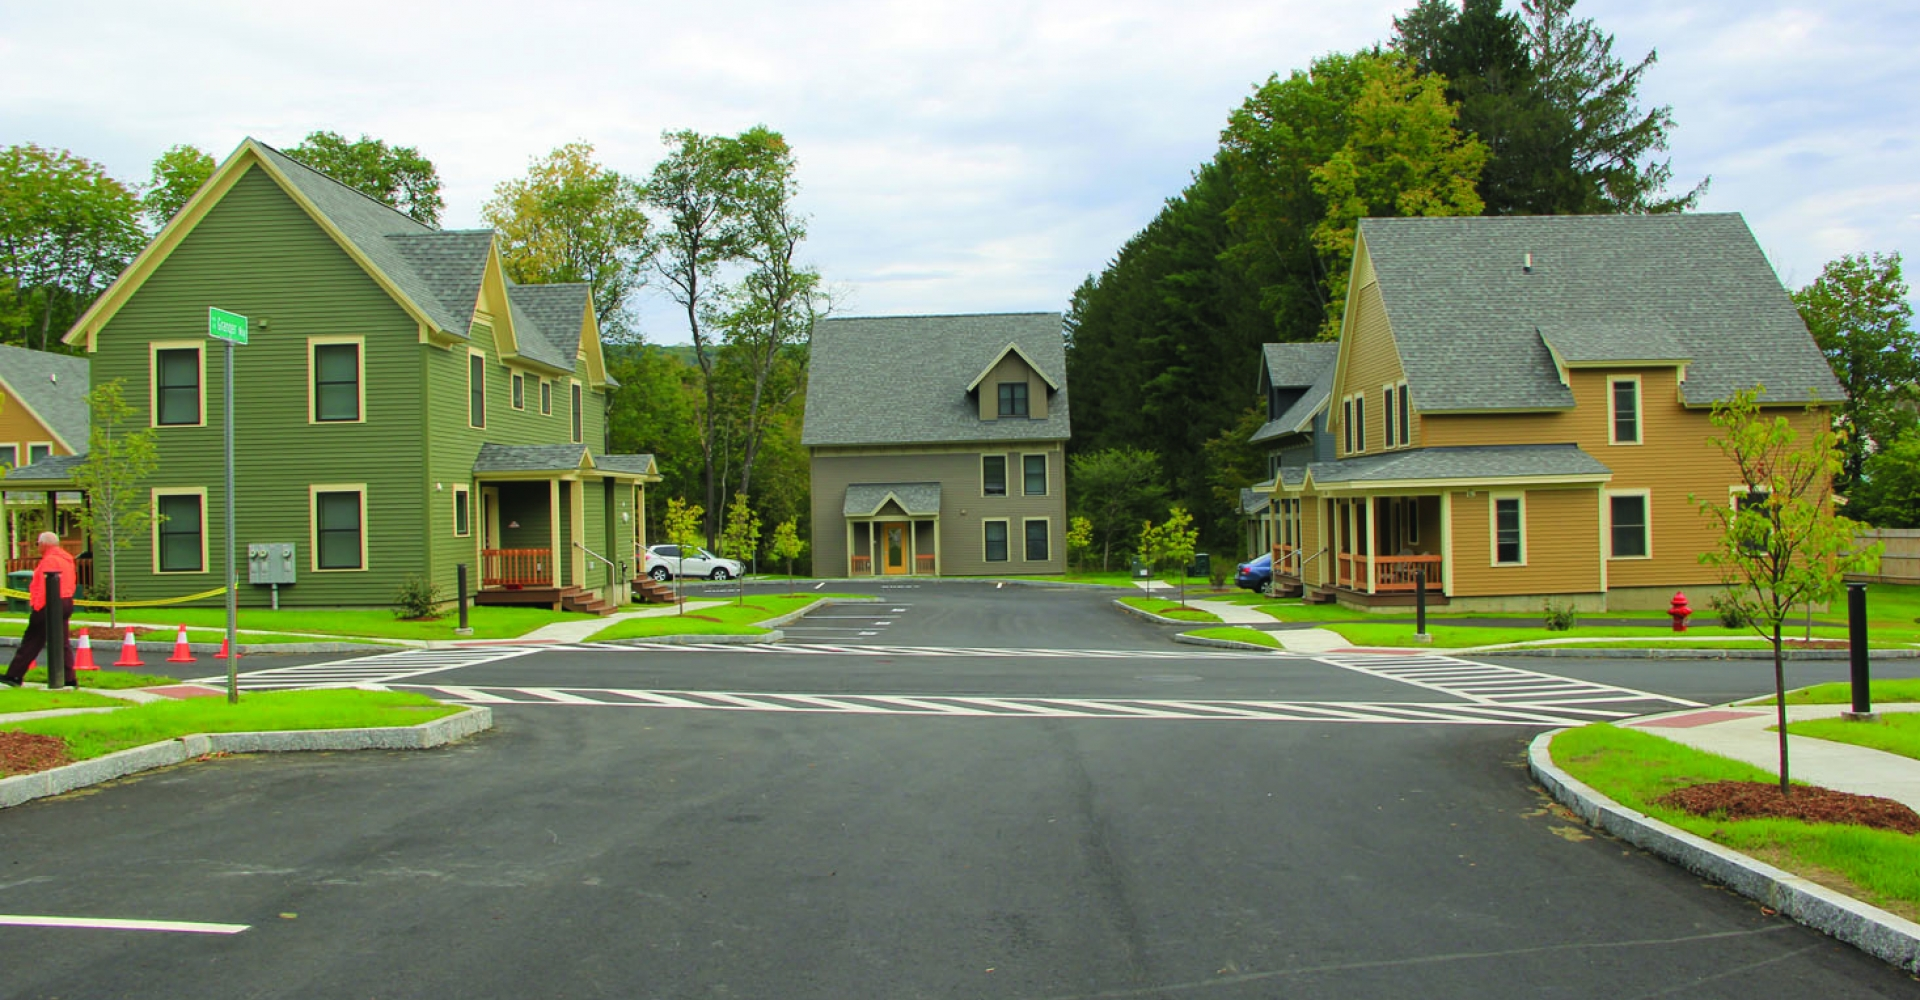 Safford Commons, Woodstock - family rental housing developed by Twin Pines Housing and Housing Vermont